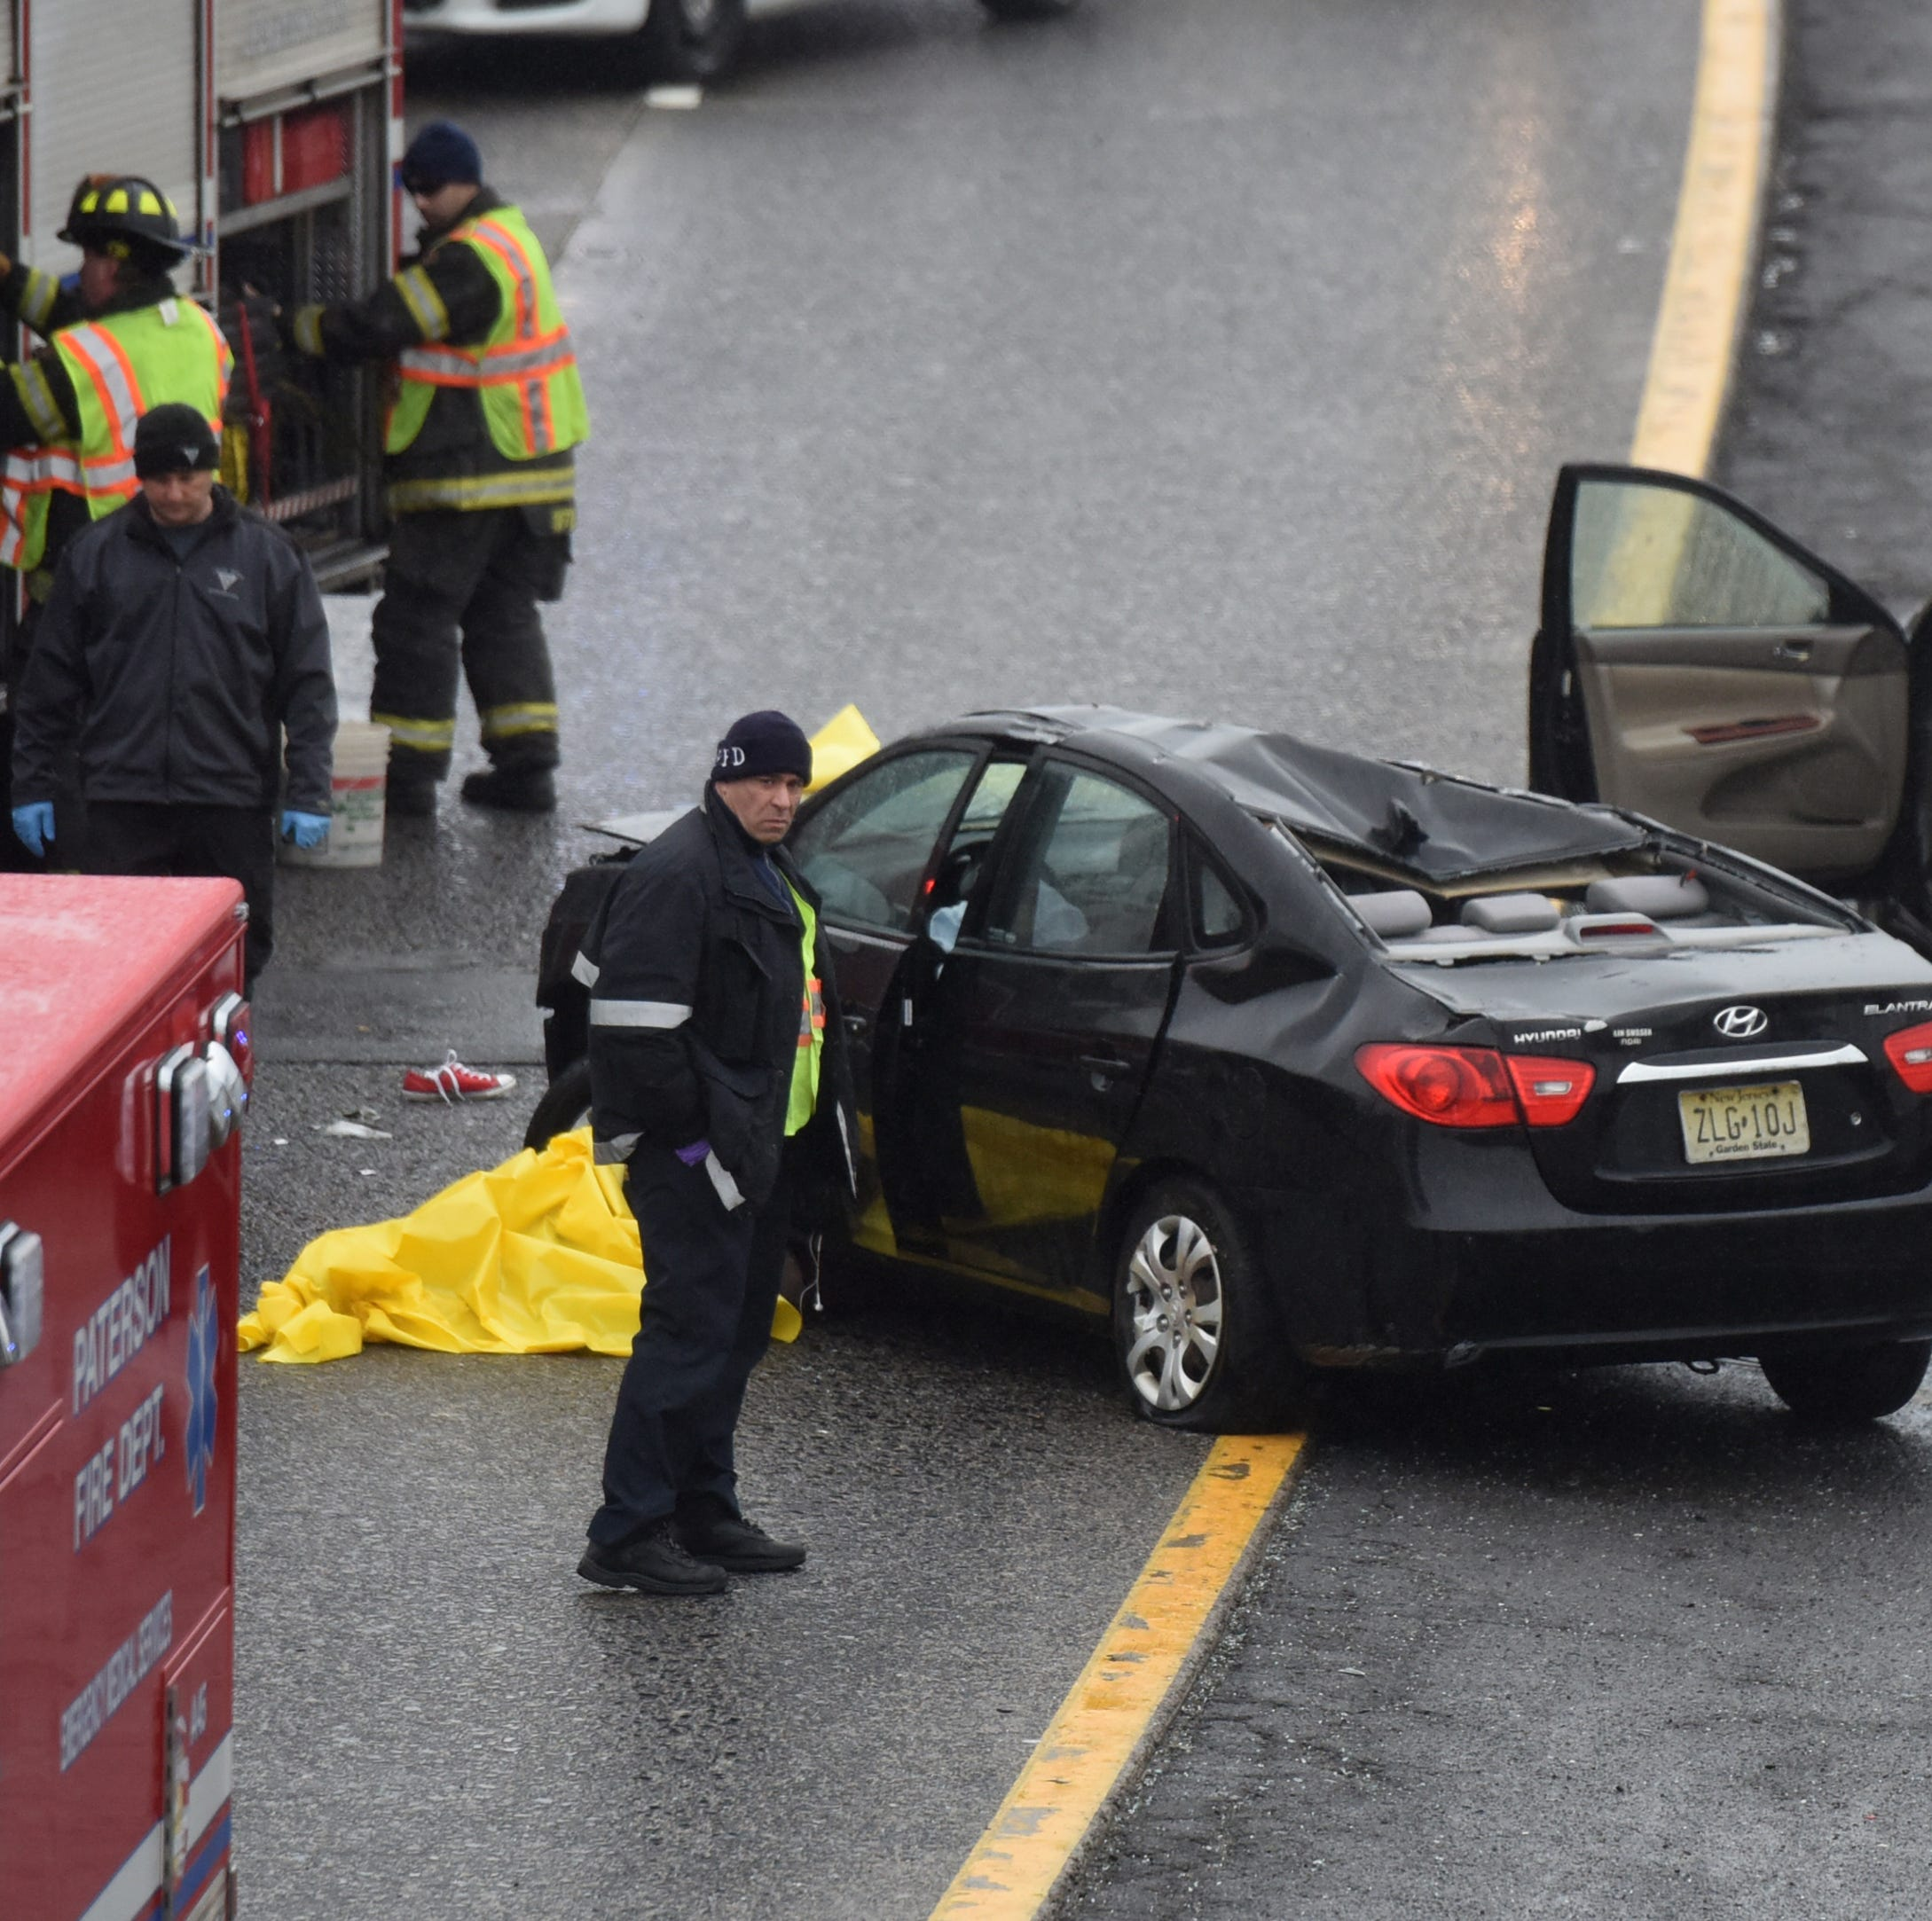 State police identify pair killed on Route 80 in Paterson